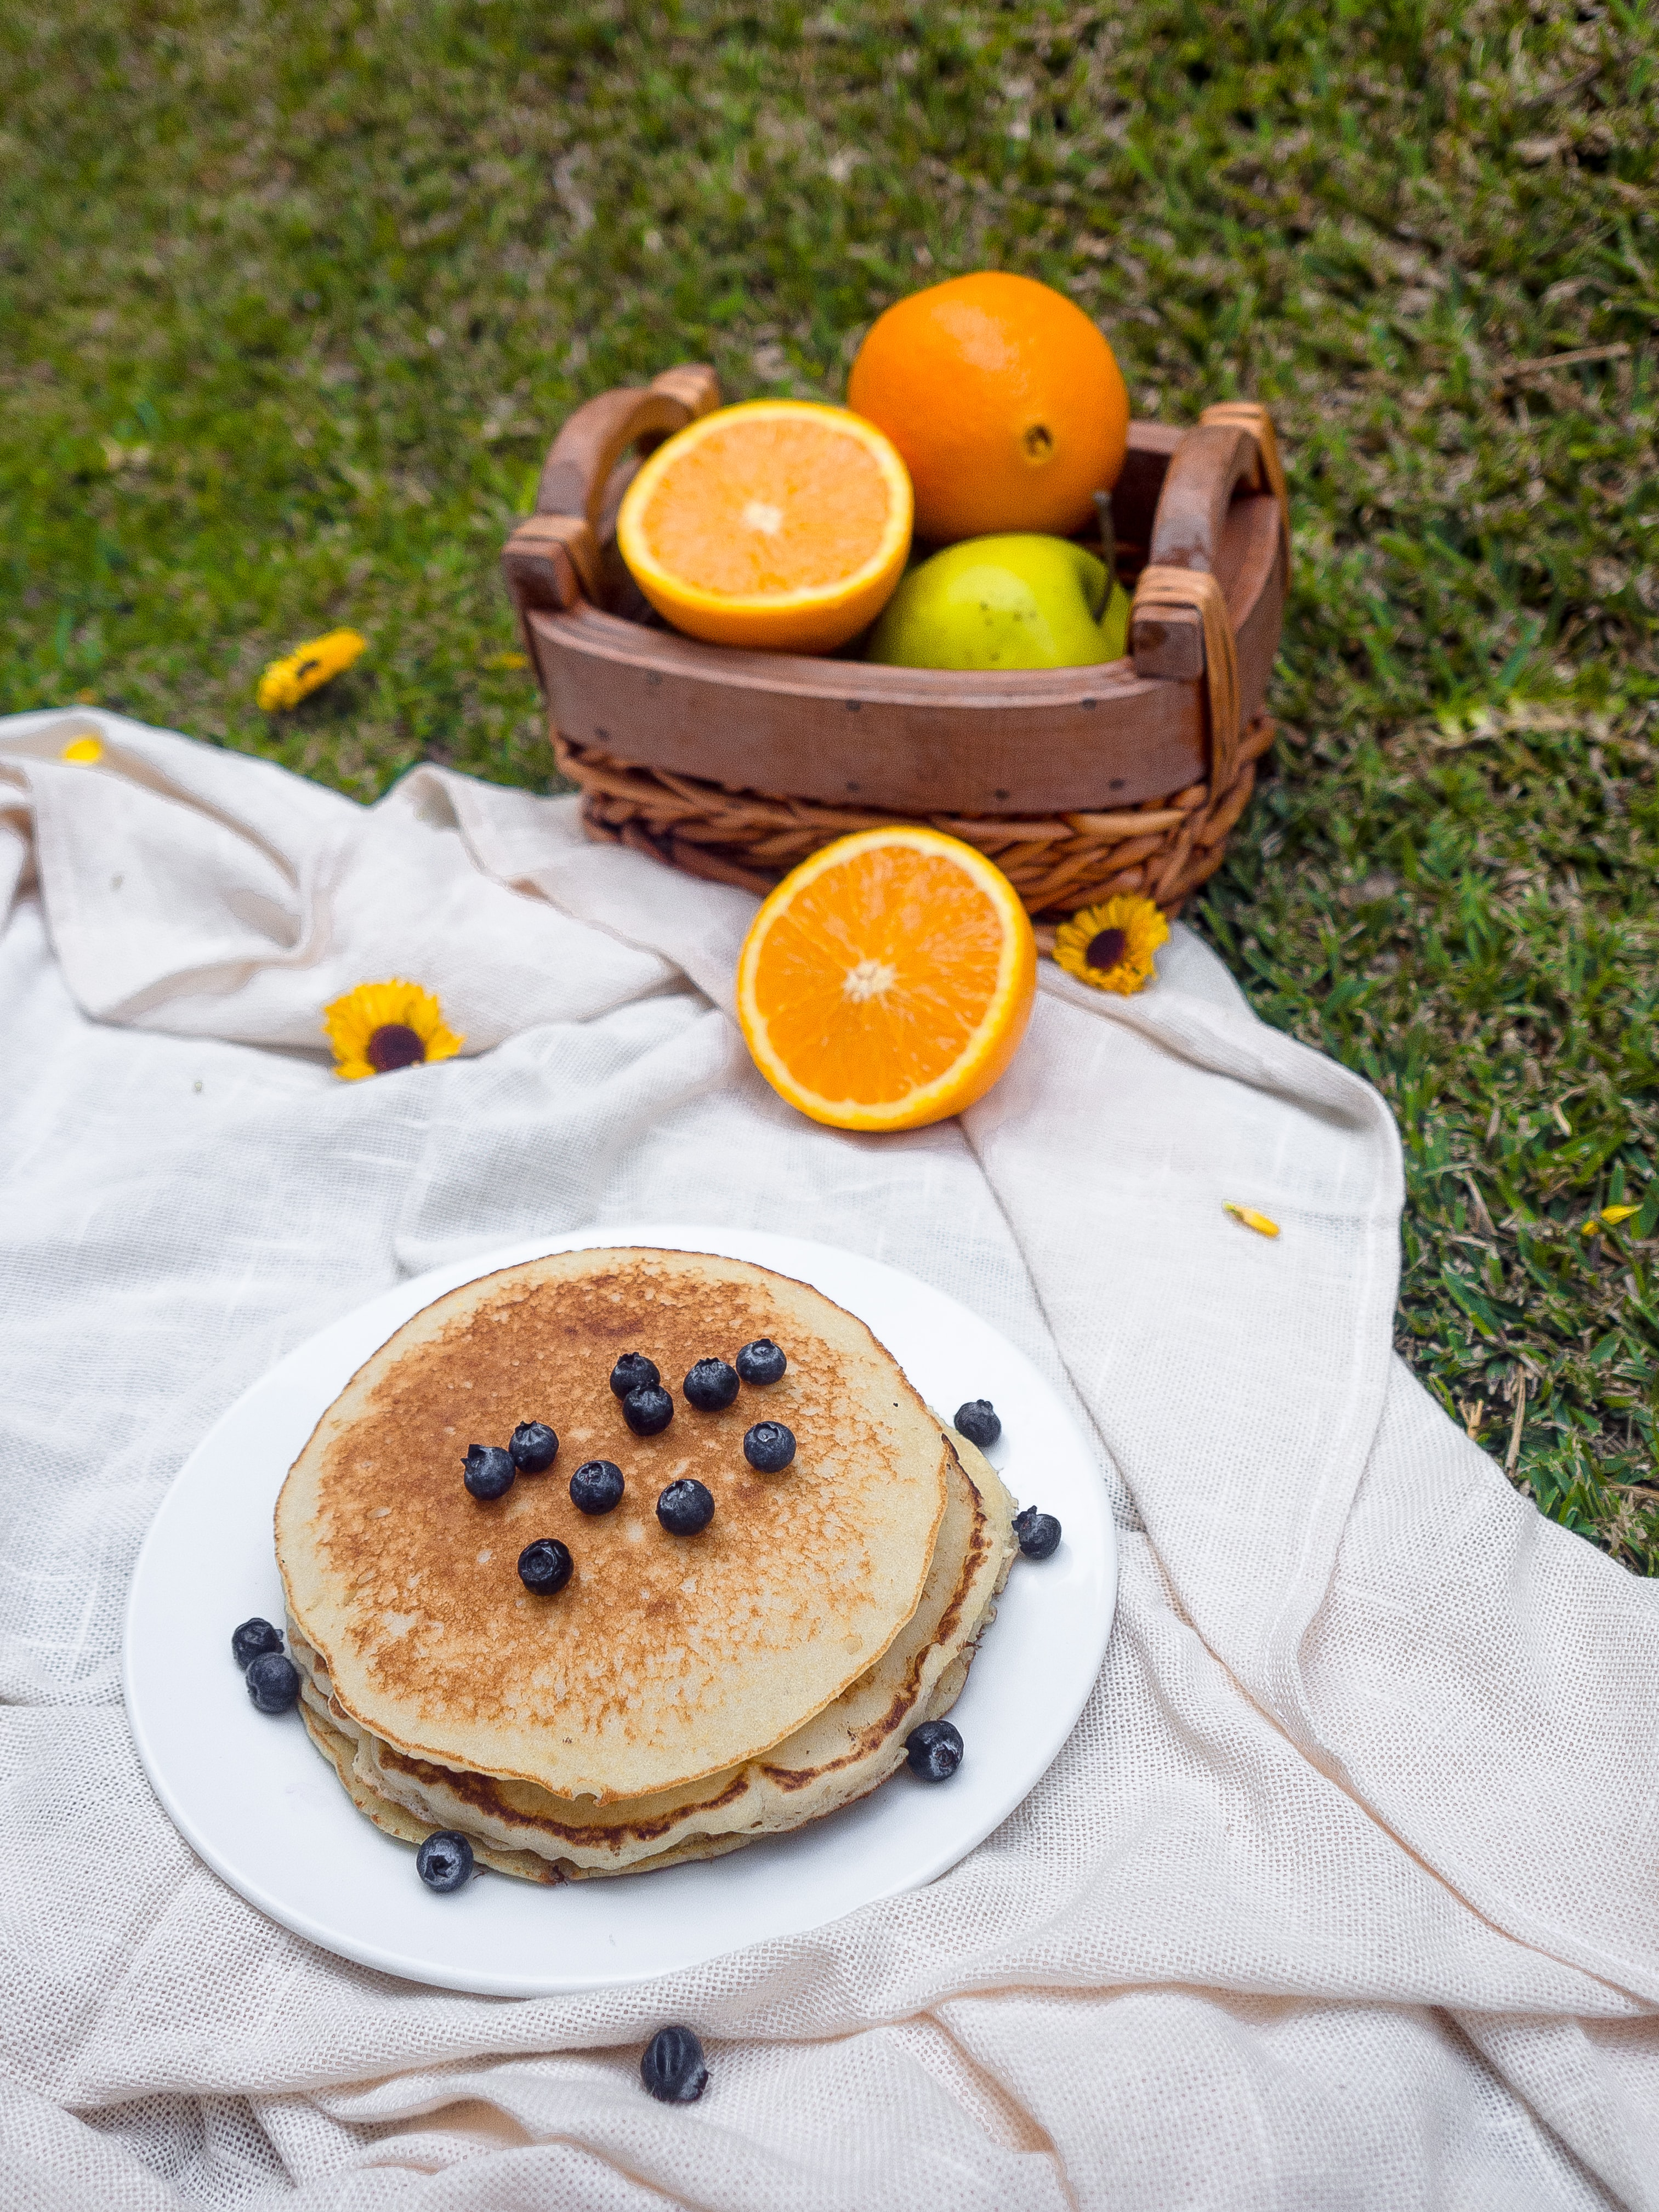 pancake with blueberries